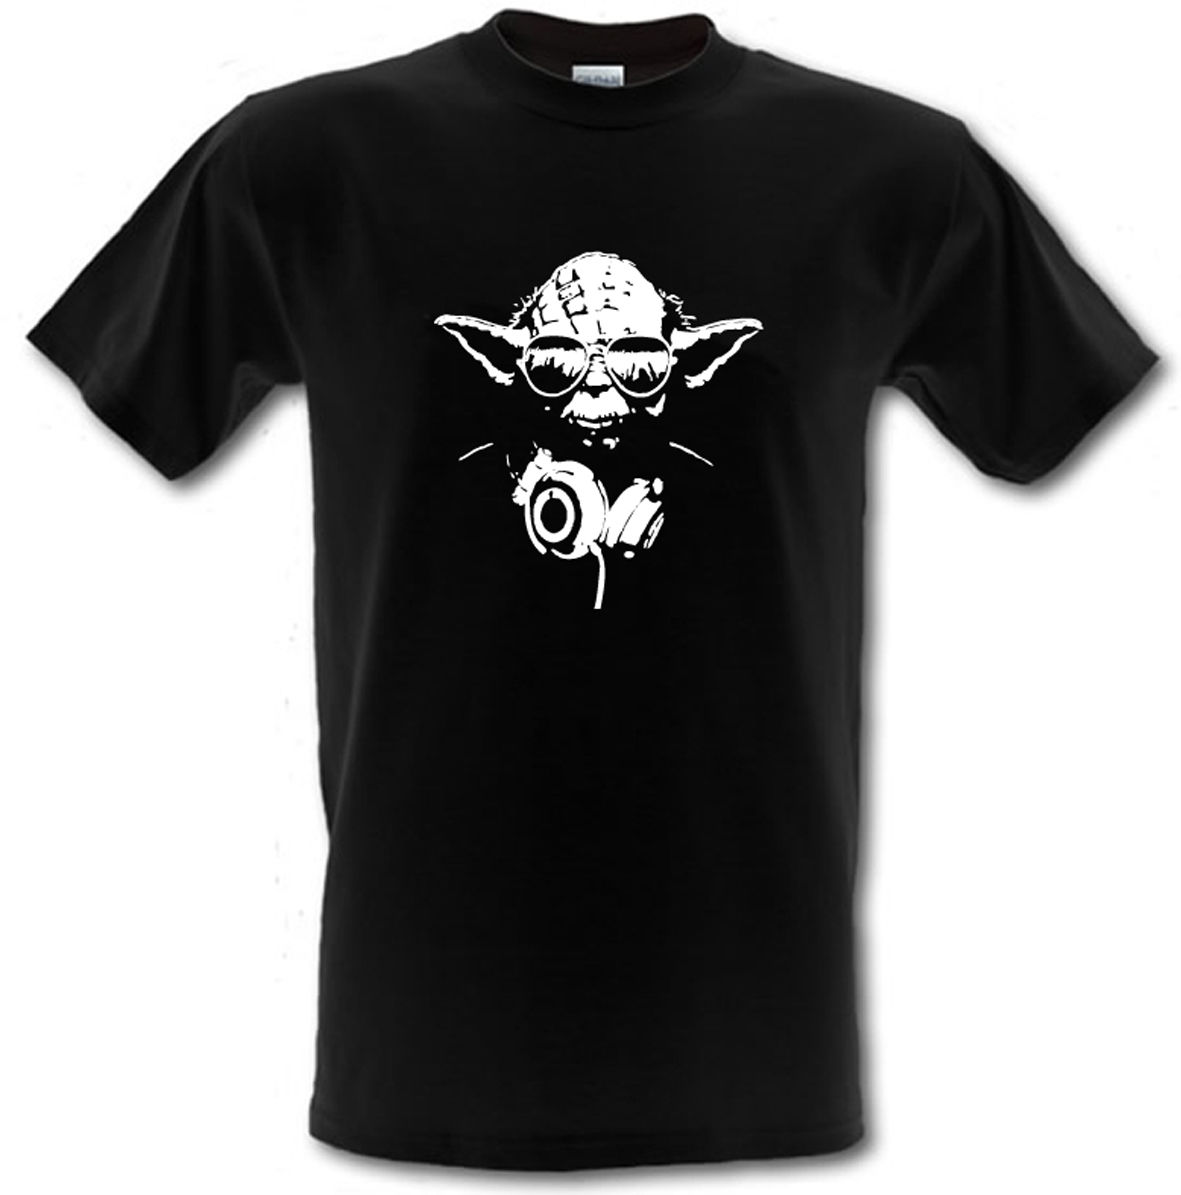 DJ YODA STAR WARS FILM Heavy Cotton T-shirt Sizes from Small to XXXL Free shipping